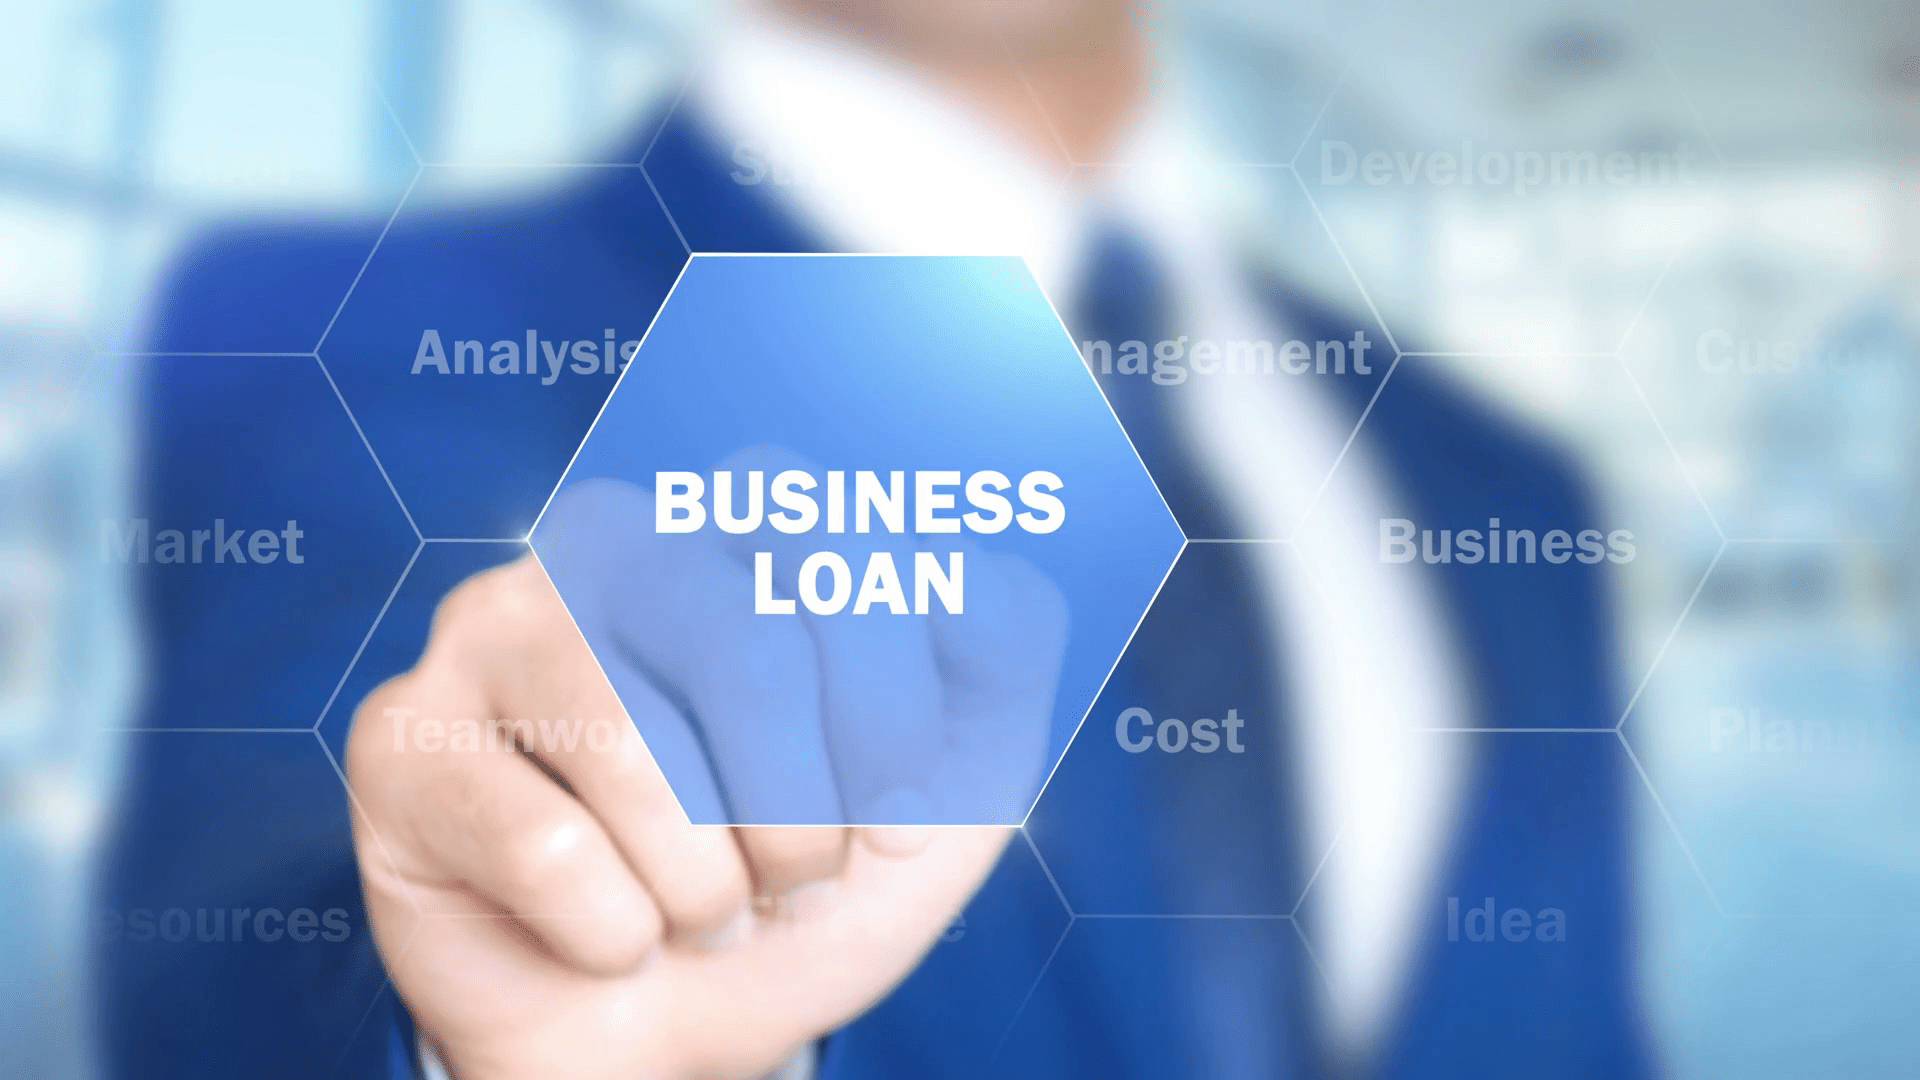 How can we apply for a small business loan in Canada